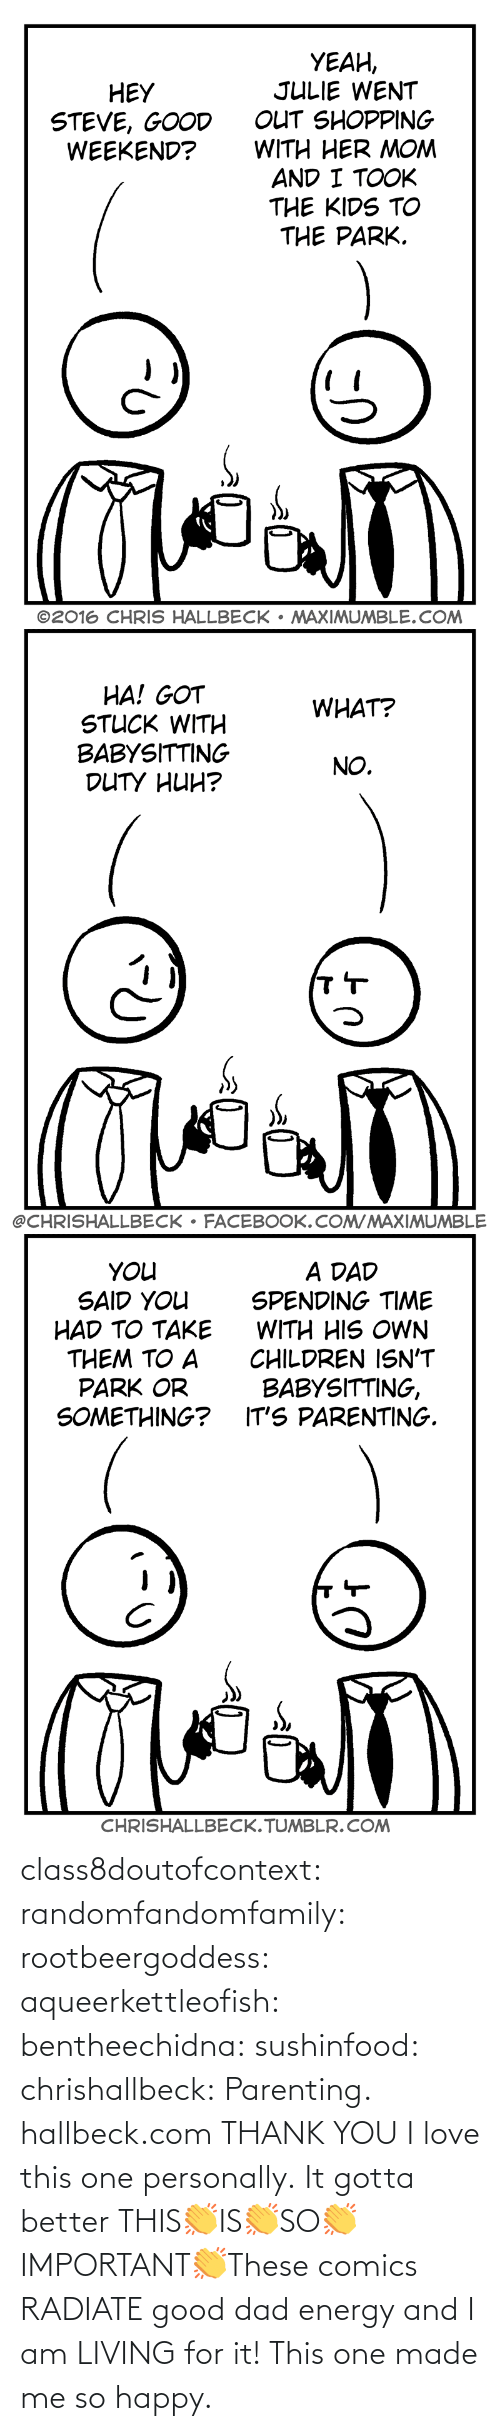 Height: class8doutofcontext: randomfandomfamily:  rootbeergoddess:  aqueerkettleofish:  bentheechidna:  sushinfood:  chrishallbeck:  Parenting. hallbeck.com  THANK YOU  I love this one personally.    It gotta better   THIS👏IS👏SO👏IMPORTANT👏These comics RADIATE good dad energy and I am LIVING for it!    This one made me so happy.